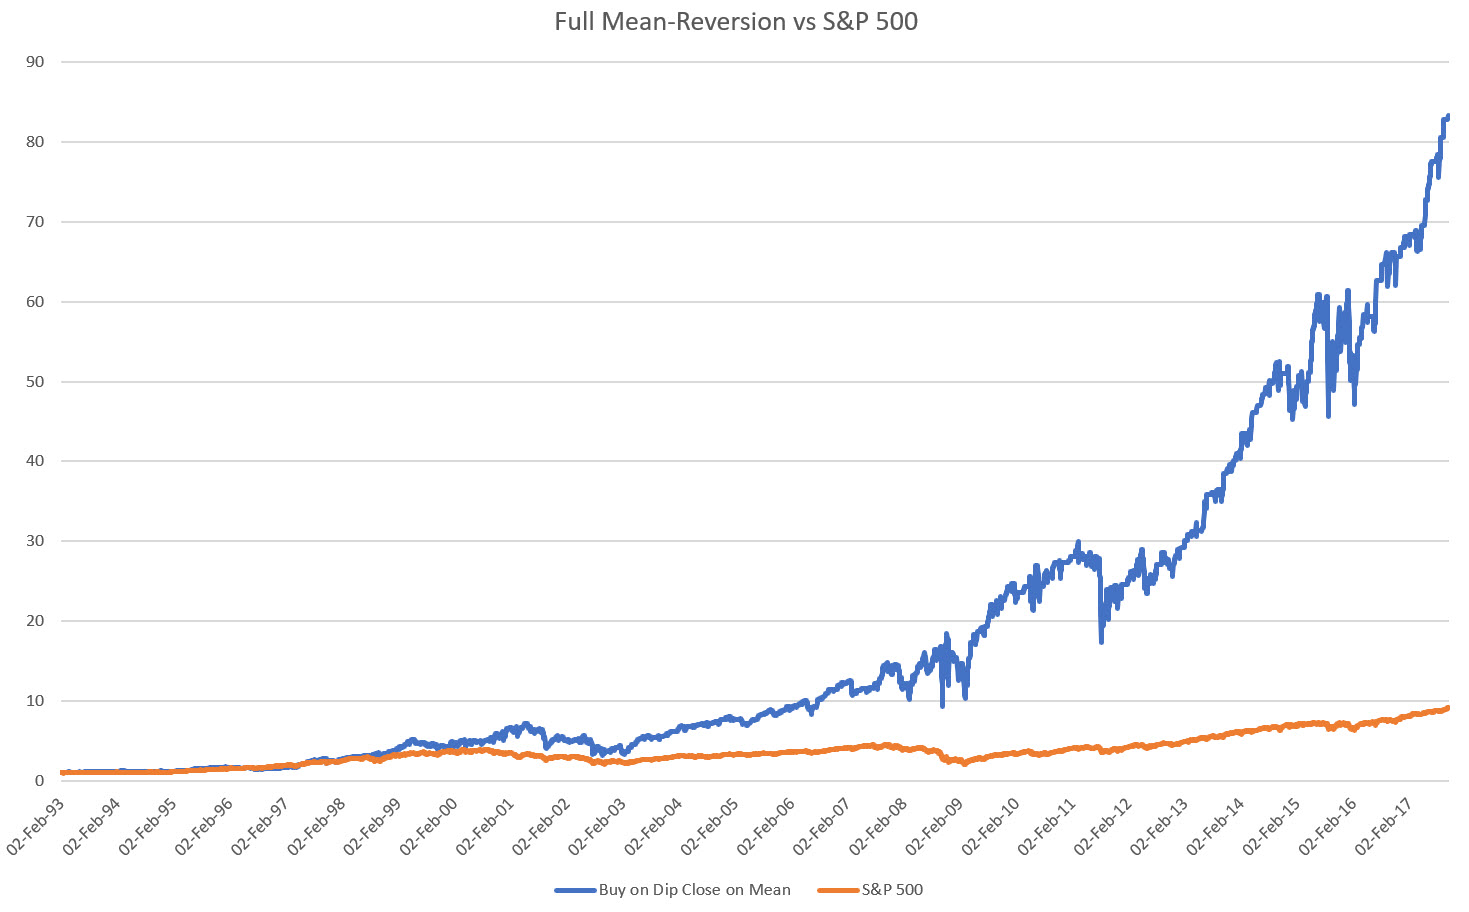 Full Mean Reversion vs S&P 500